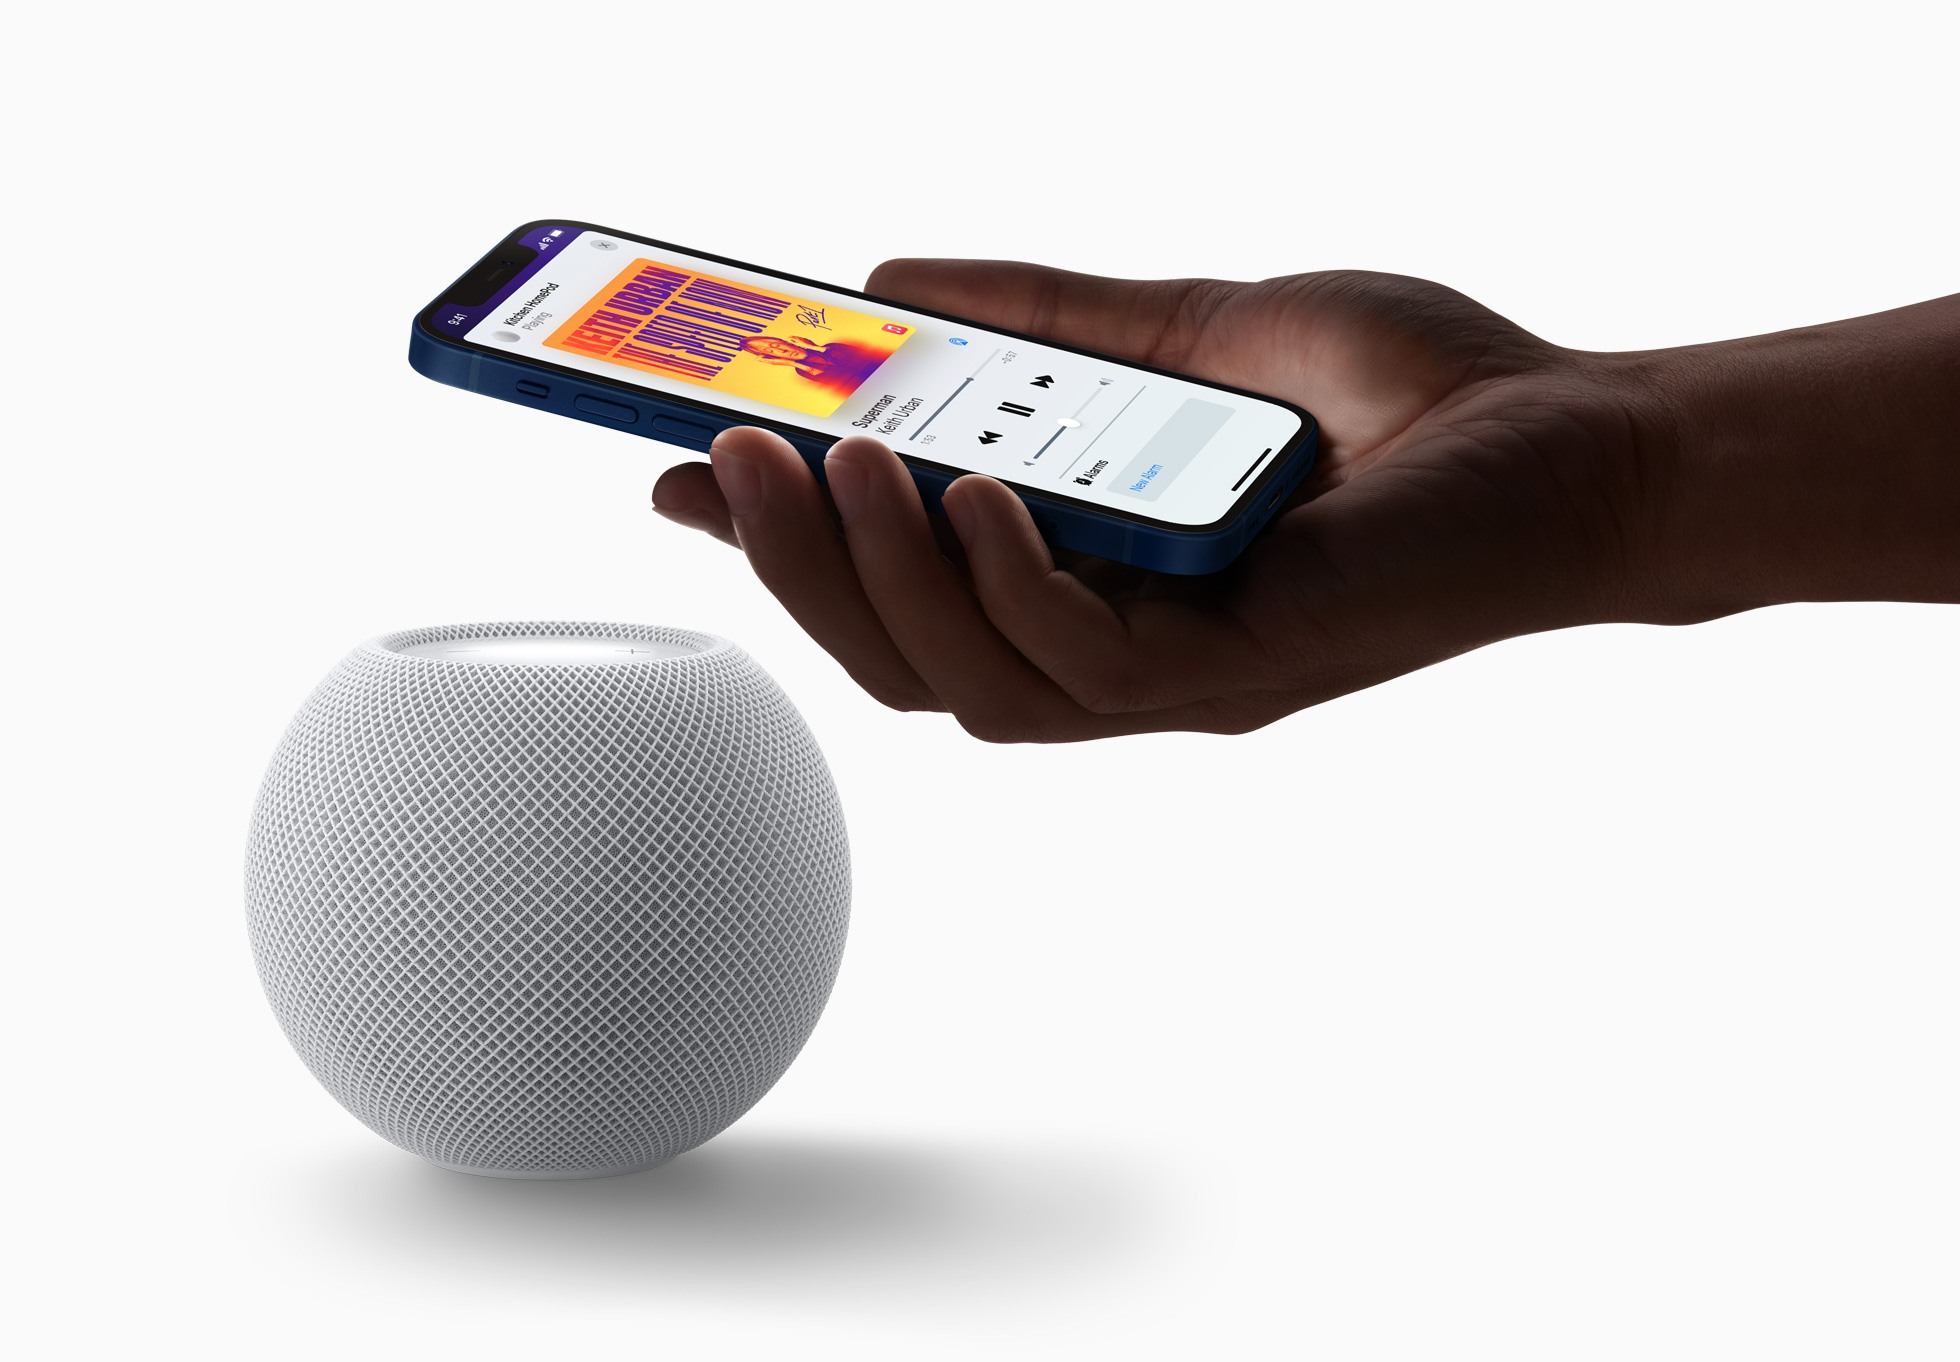 Passing music to and from a HomePod mini is easy with the U1 chip. Source: Apple.